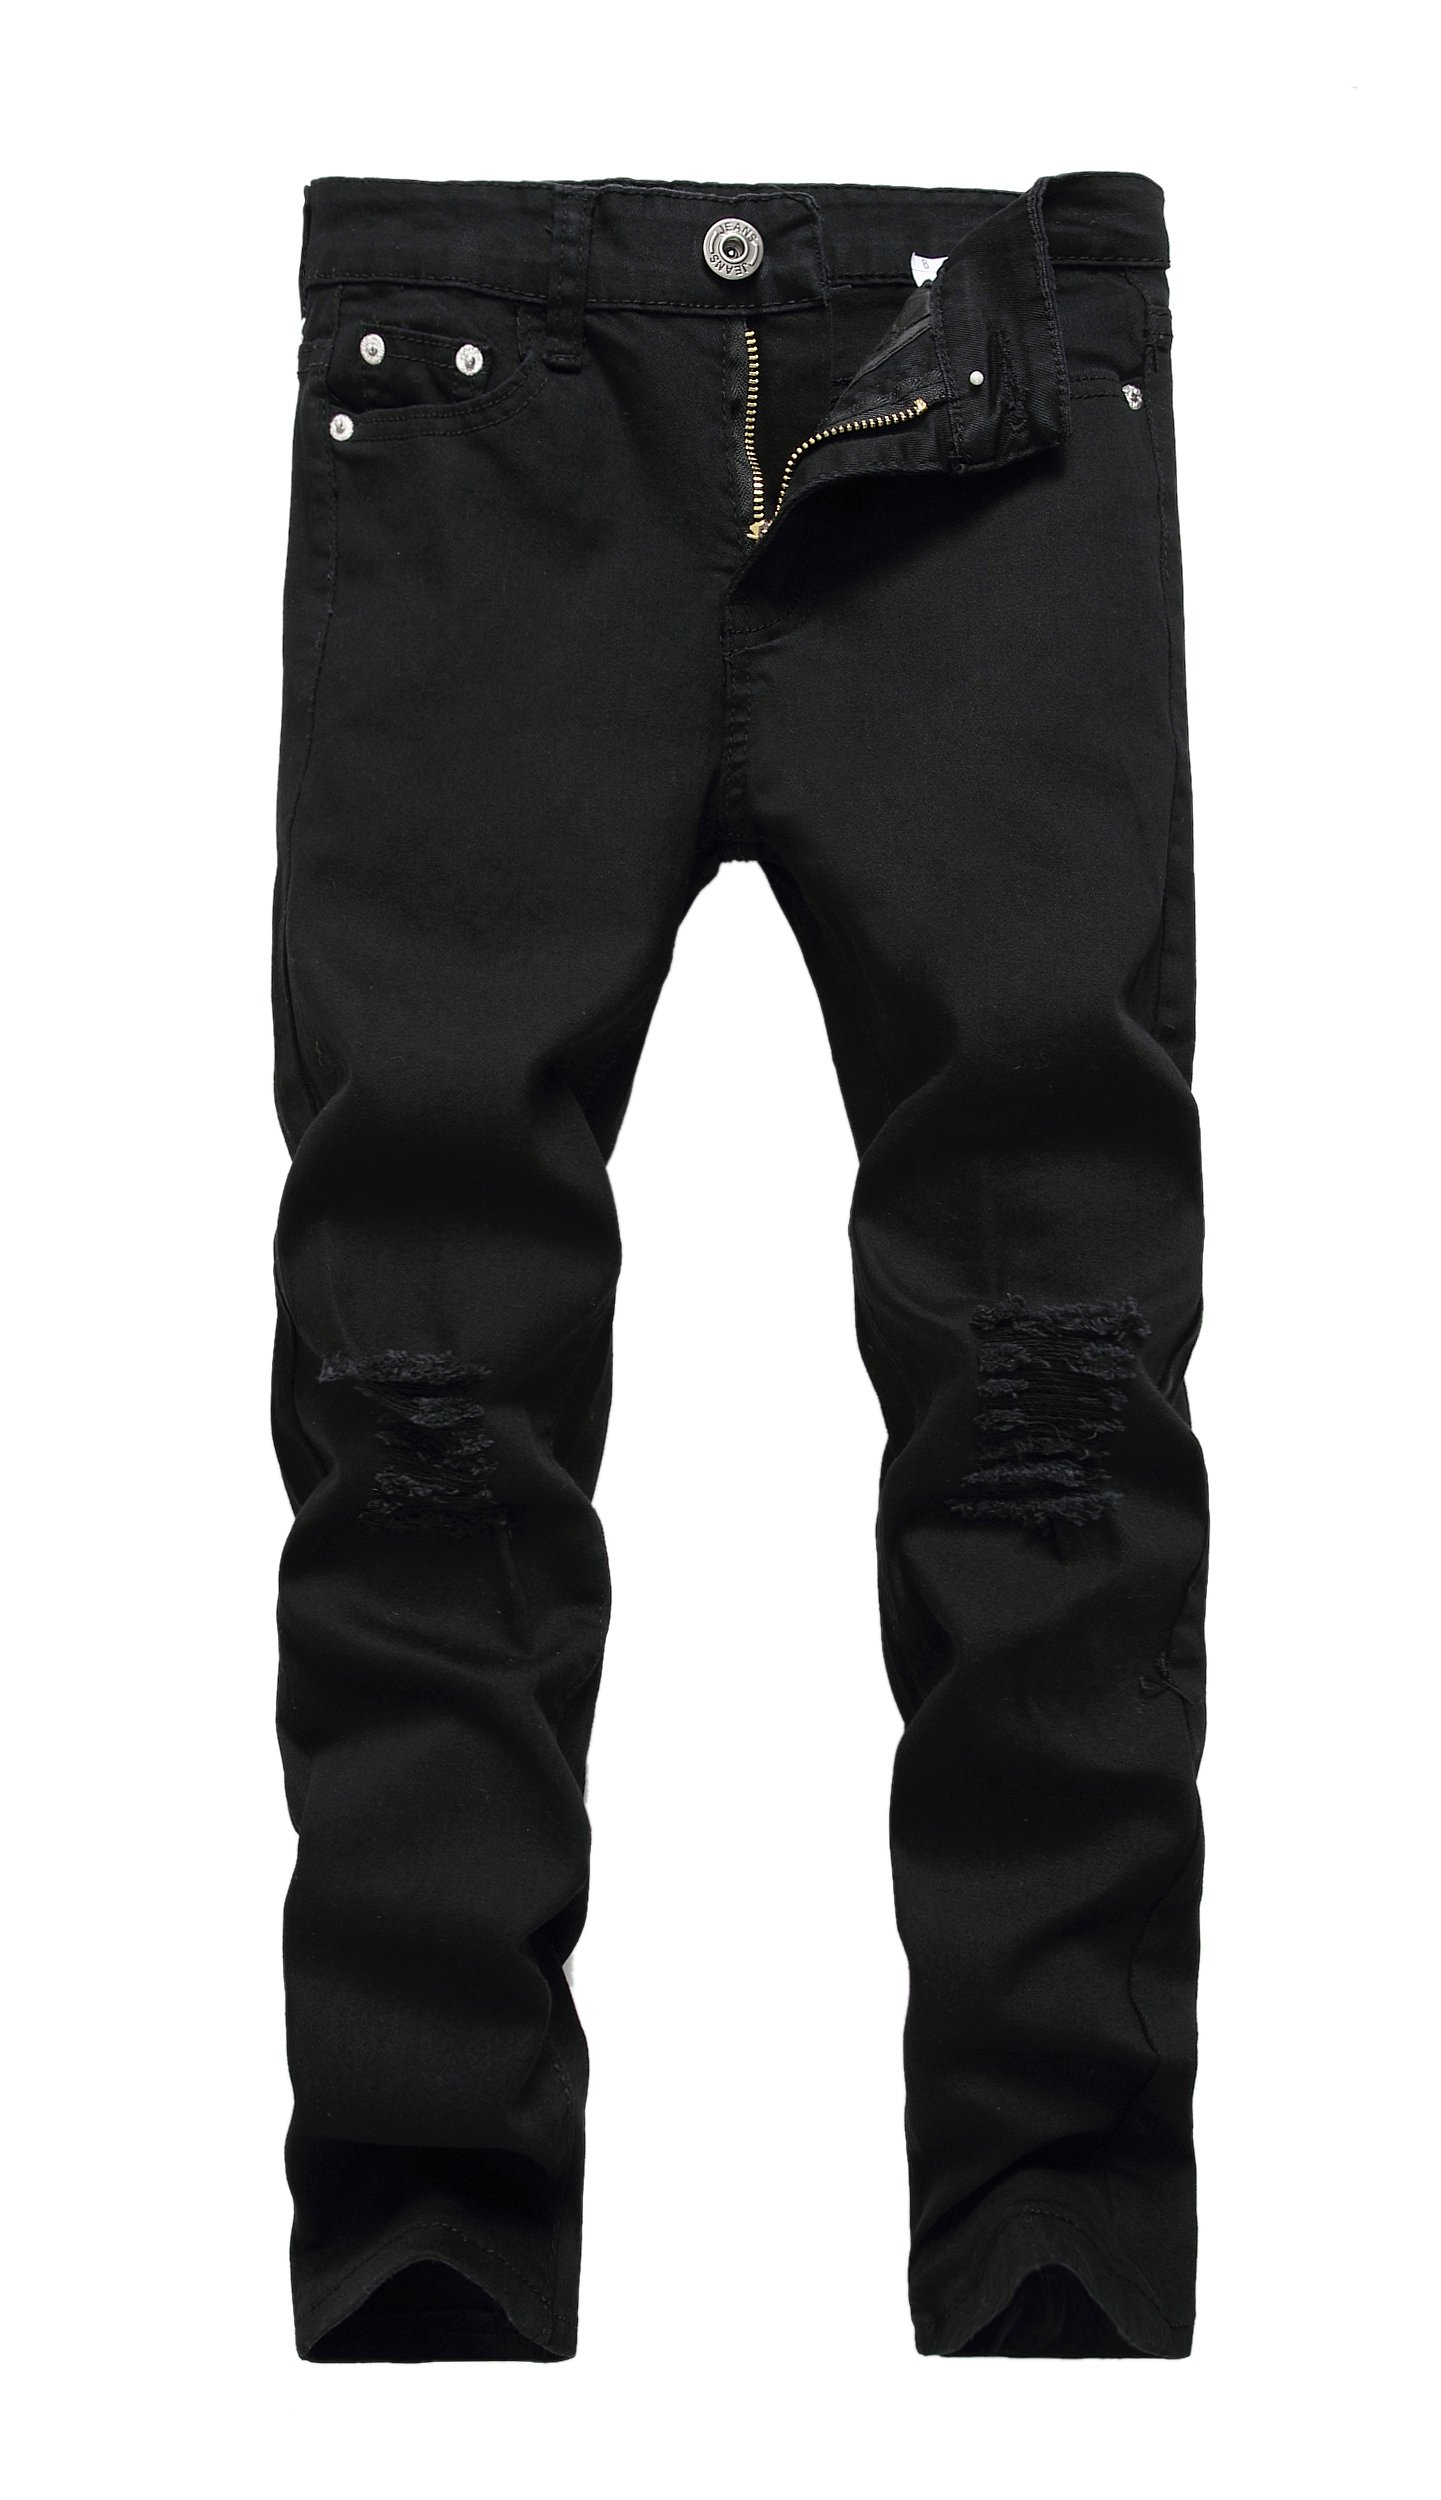 Boyu0026#39;s Black Skinny Fit Ripped Destroyed Distressed Stretch Slim Jeans Pants - EverAfterGuide.com